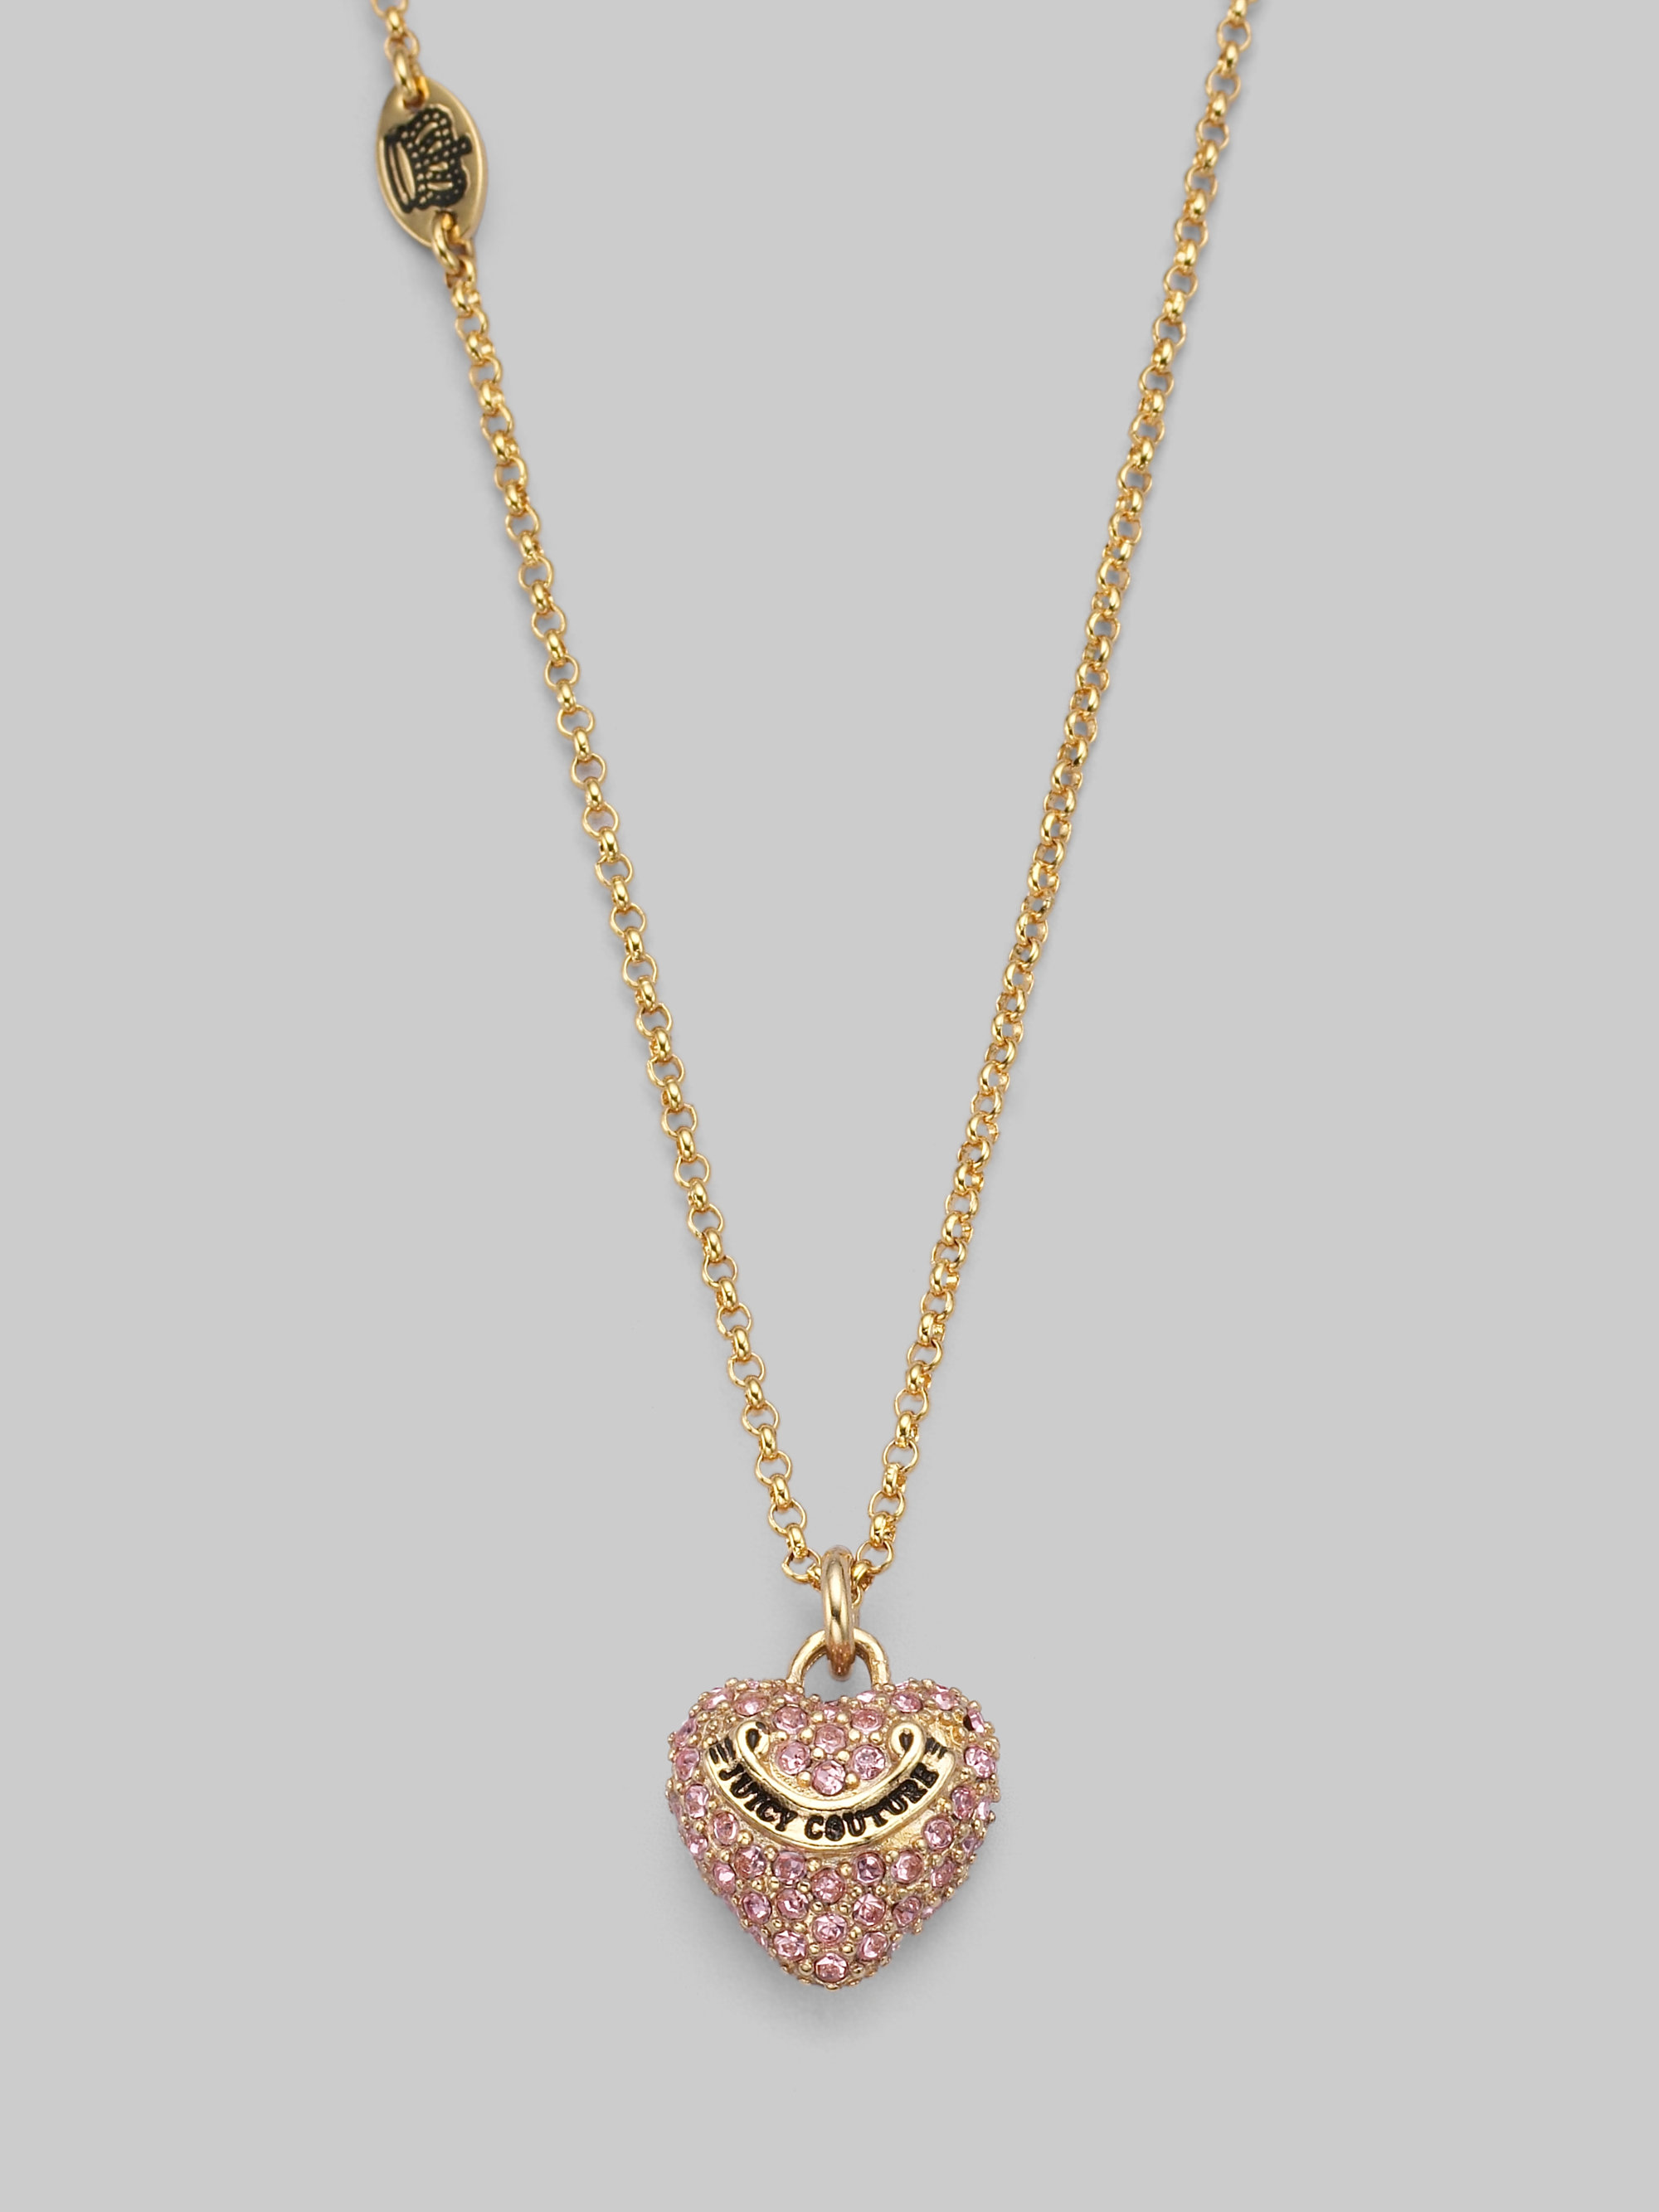 Juicy Couture Pink Pav 233 Puffed Heart Necklace In Pink Lyst